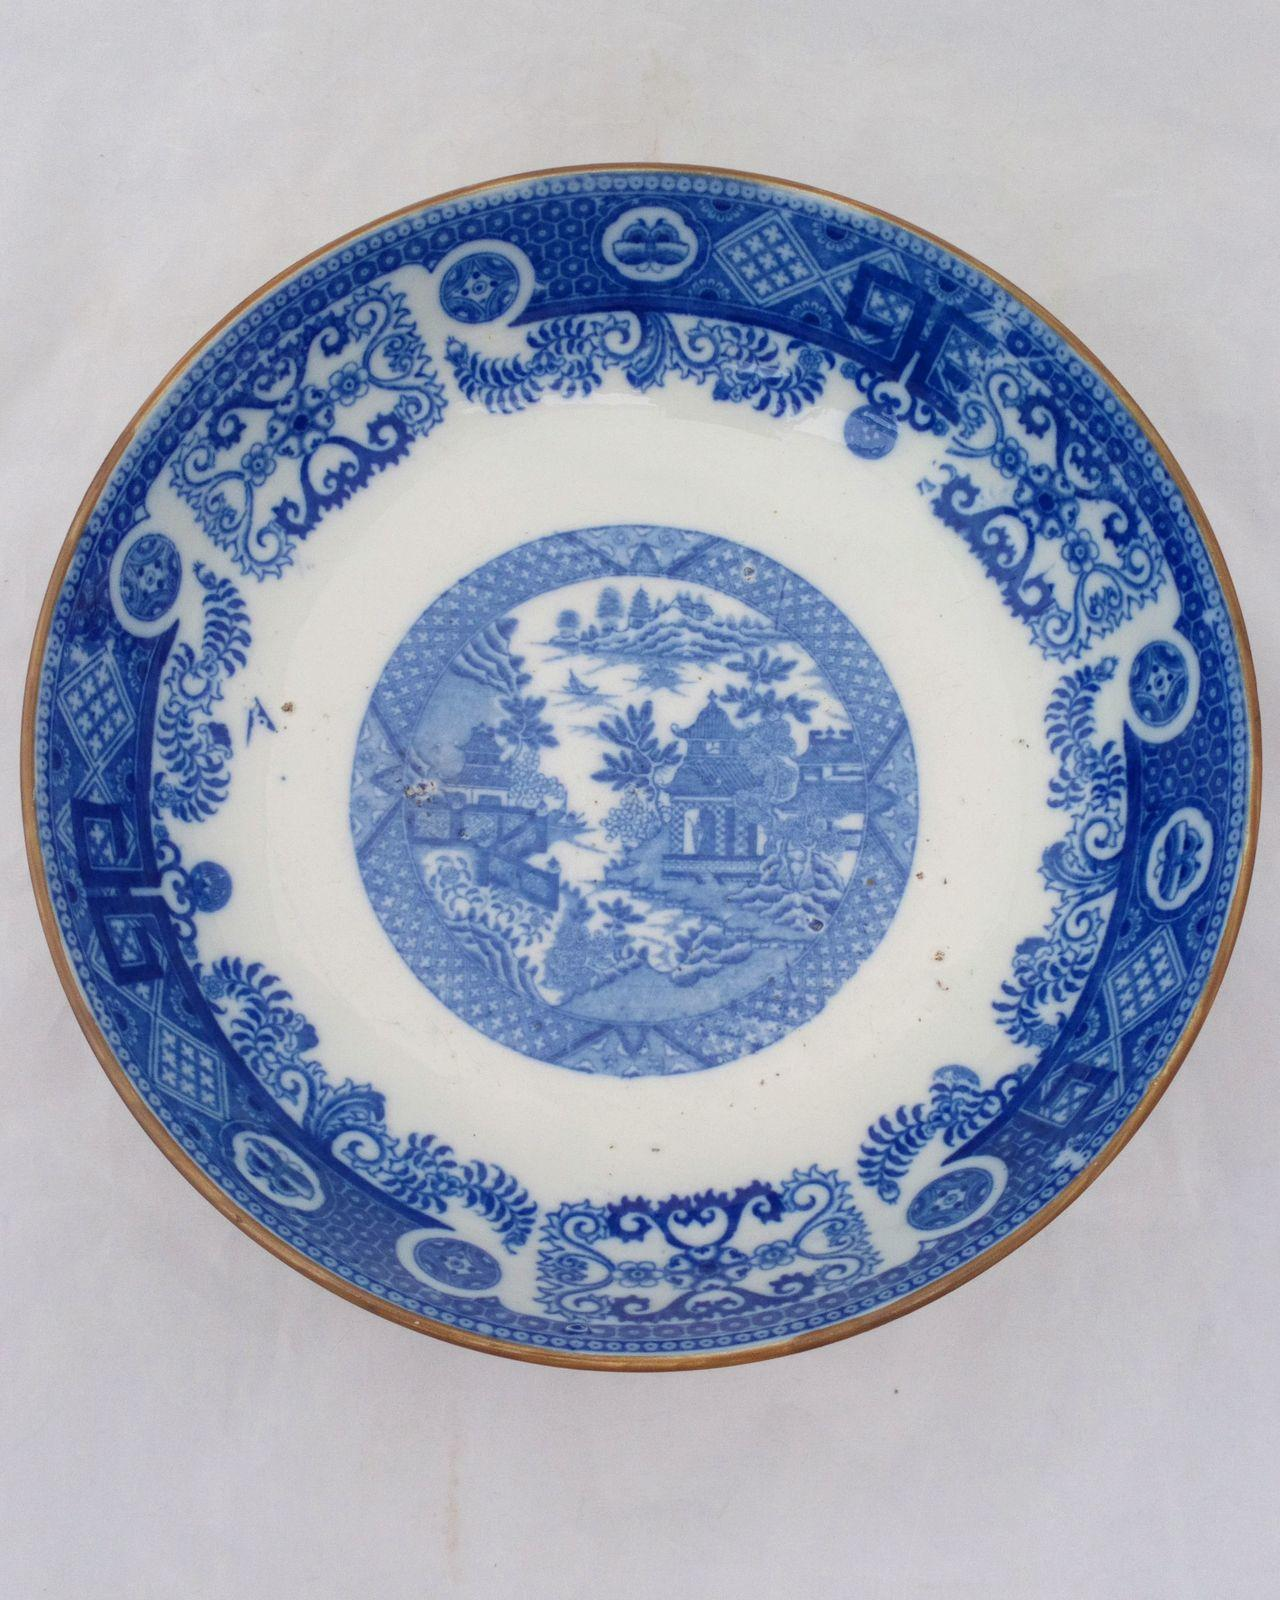 Antique Cambrian Pottery Blue & White Transfer Printed Pearlware Bowl decorated with the Bridgeless Chinoiserie or Hermit Pattern circa 1800